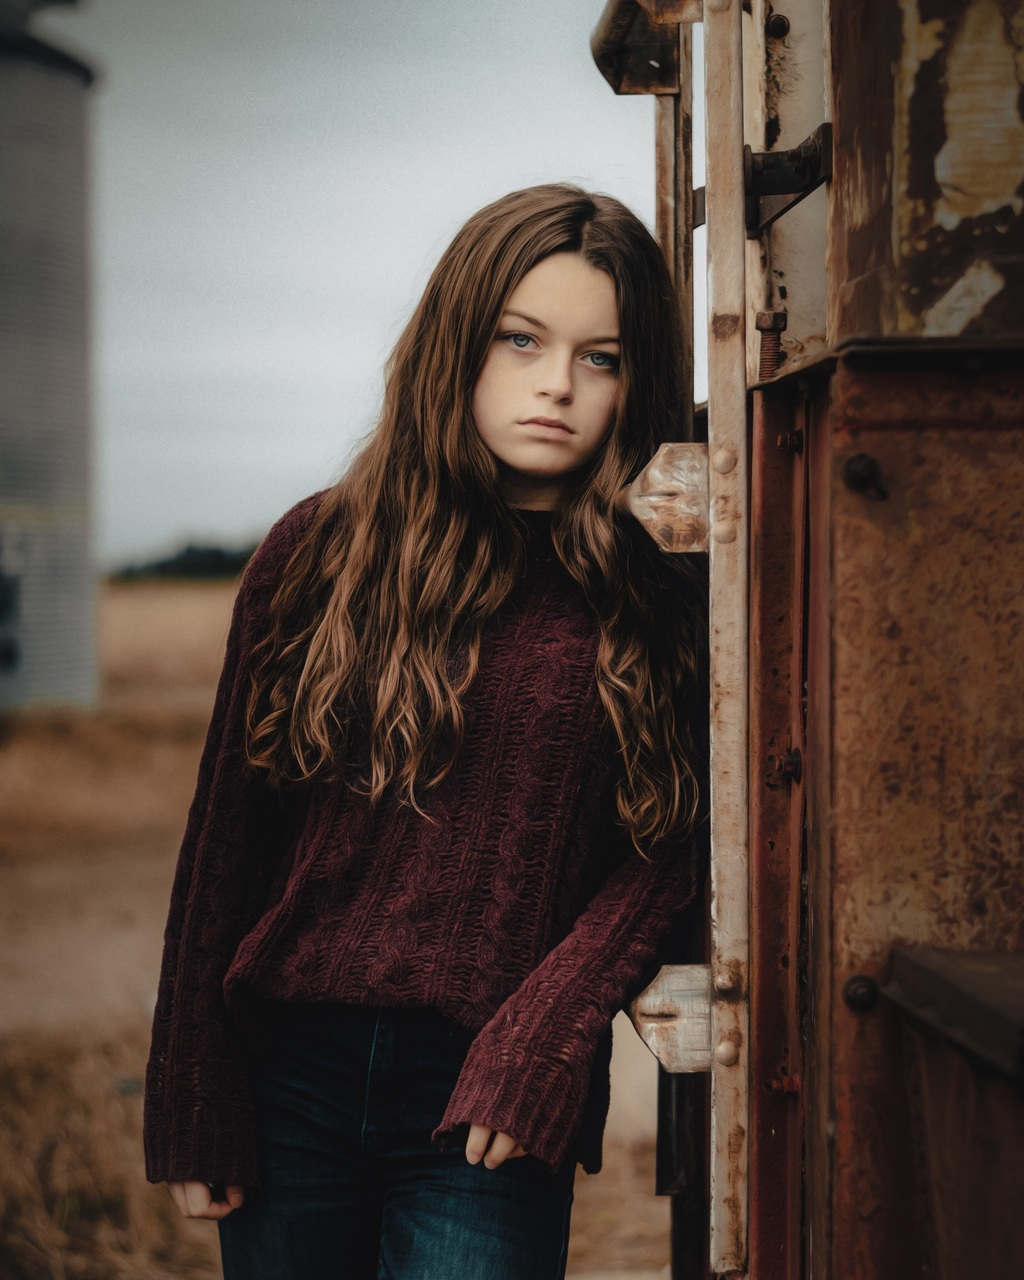 Country Style via LimebluPhotography